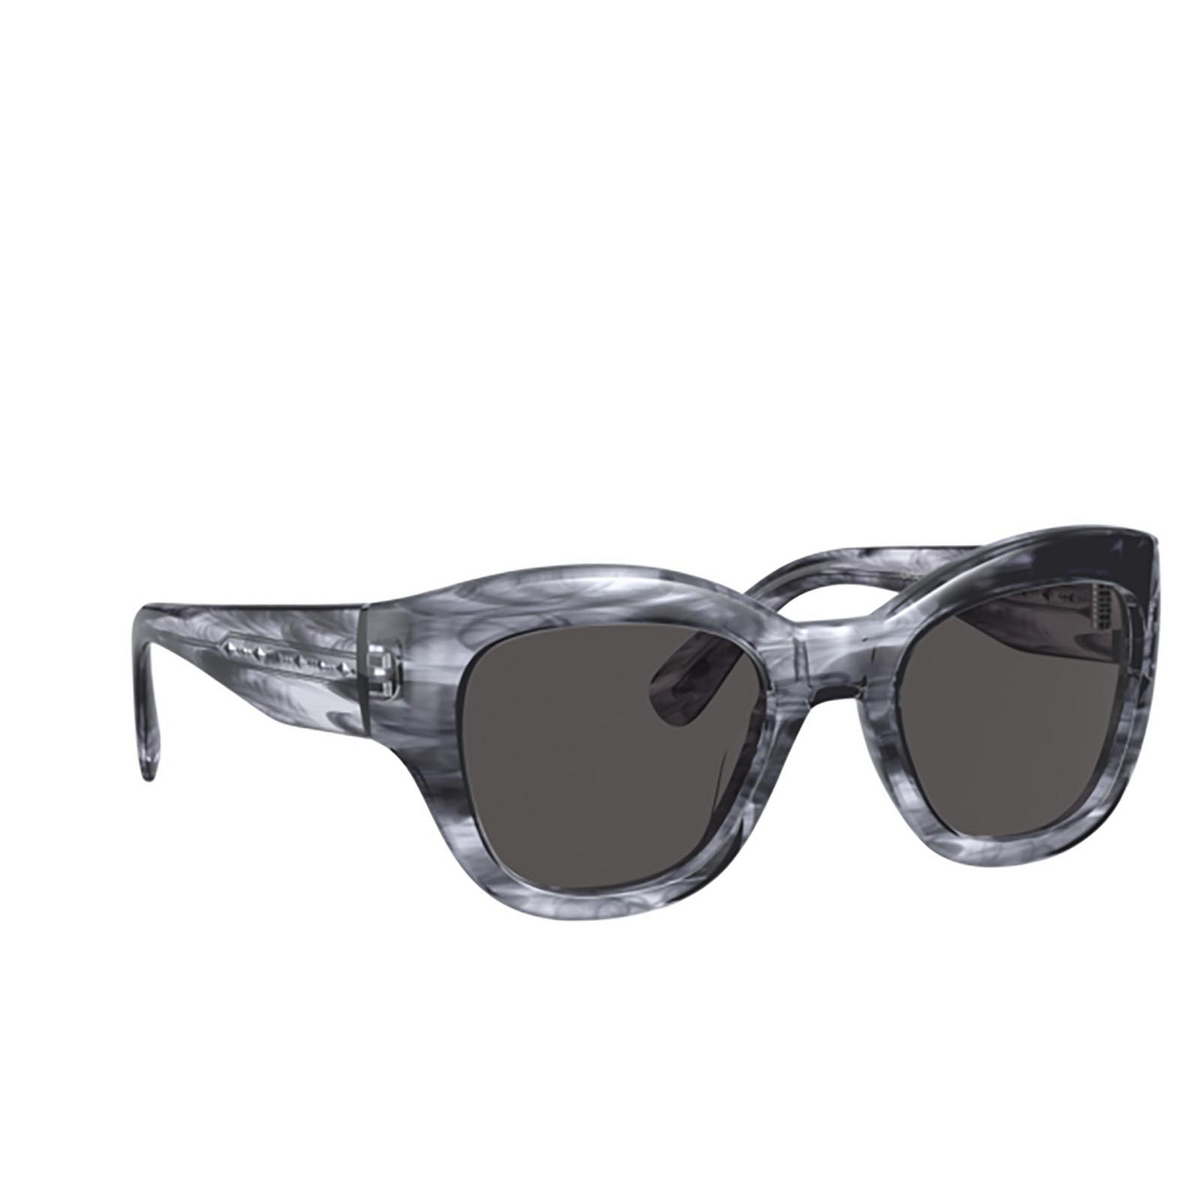 Oliver Peoples® Butterfly Sunglasses: Lalit OV5430SU color Navy Smoke 168887 - three-quarters view.